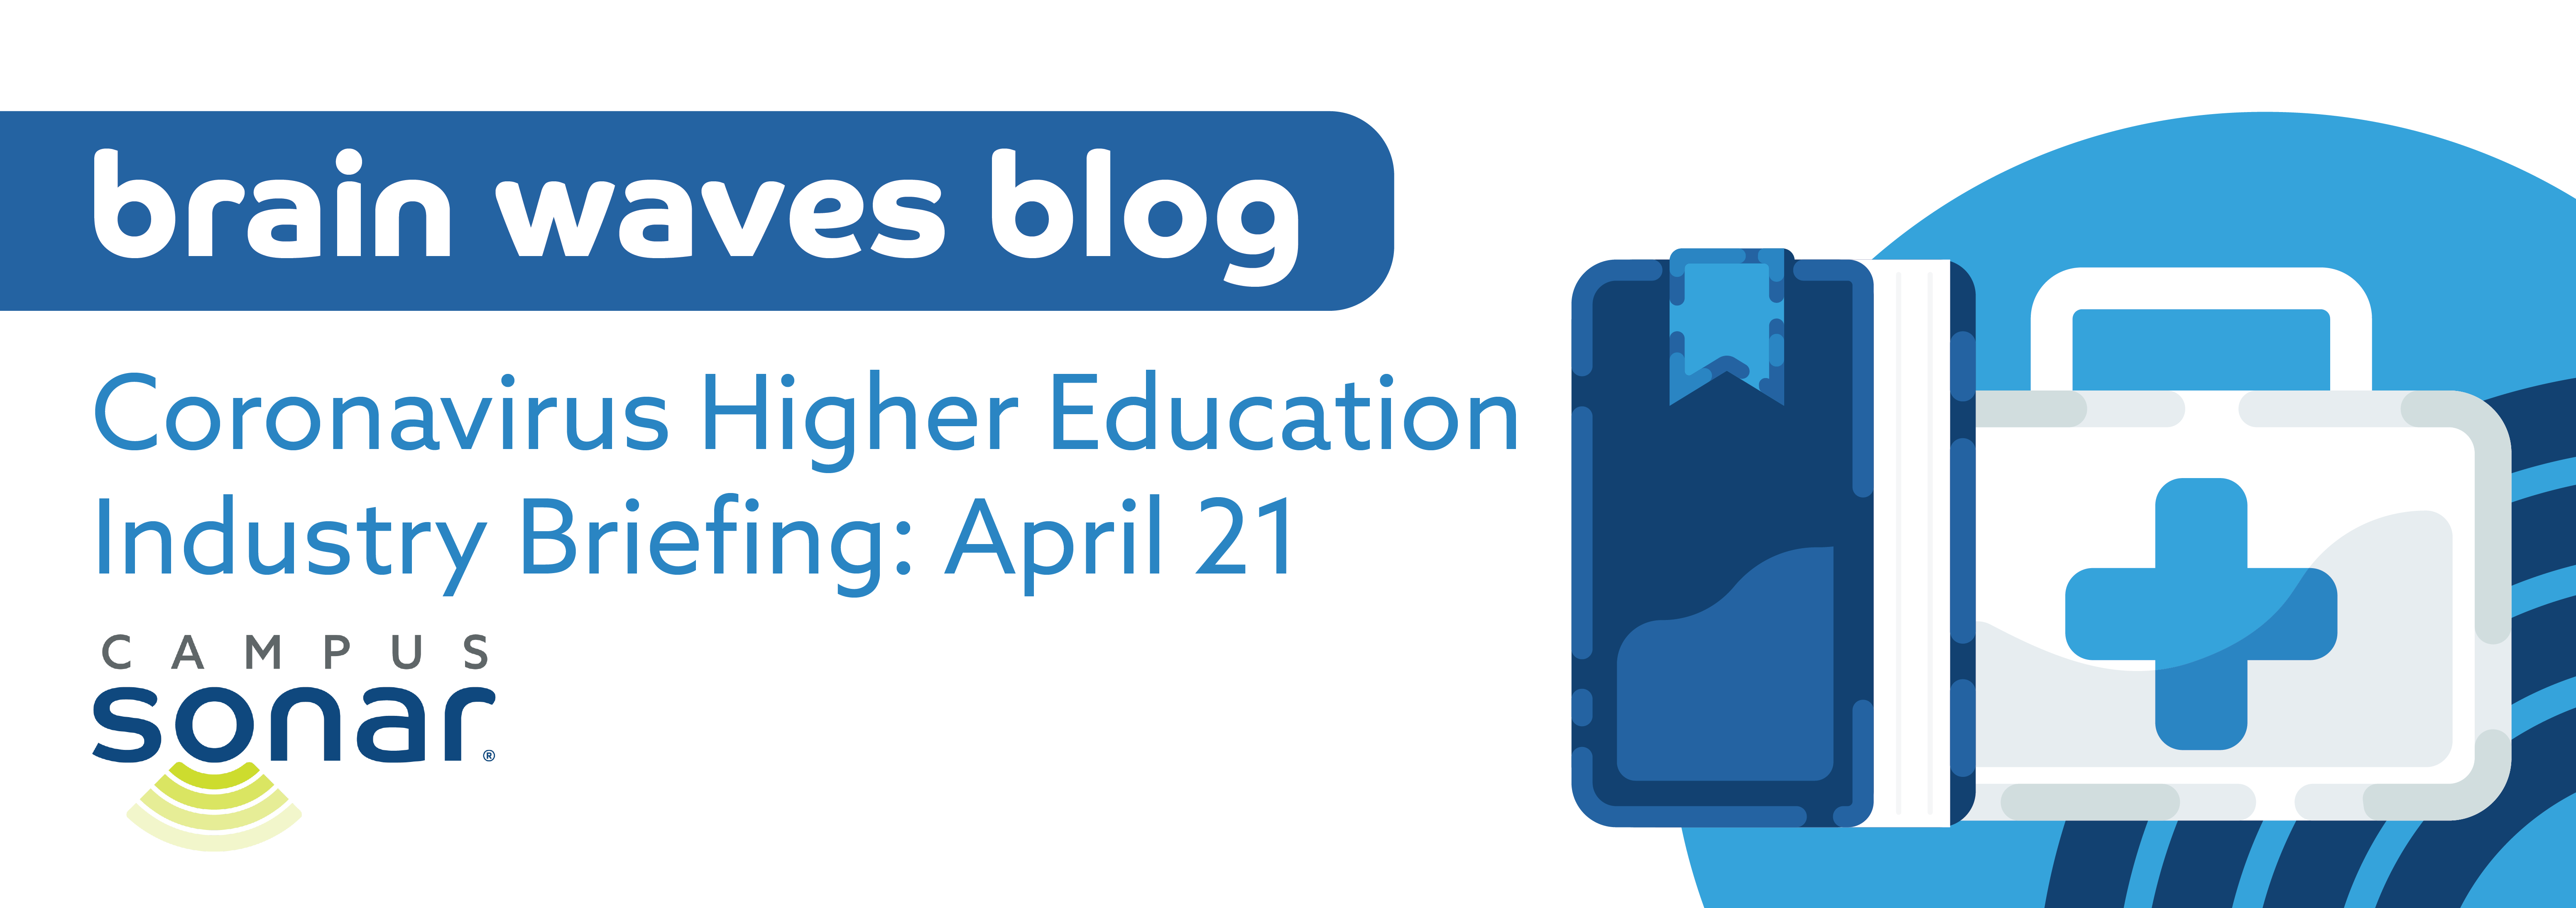 Blog post image for Coronavirus Higher Education Industry Briefing: April 21